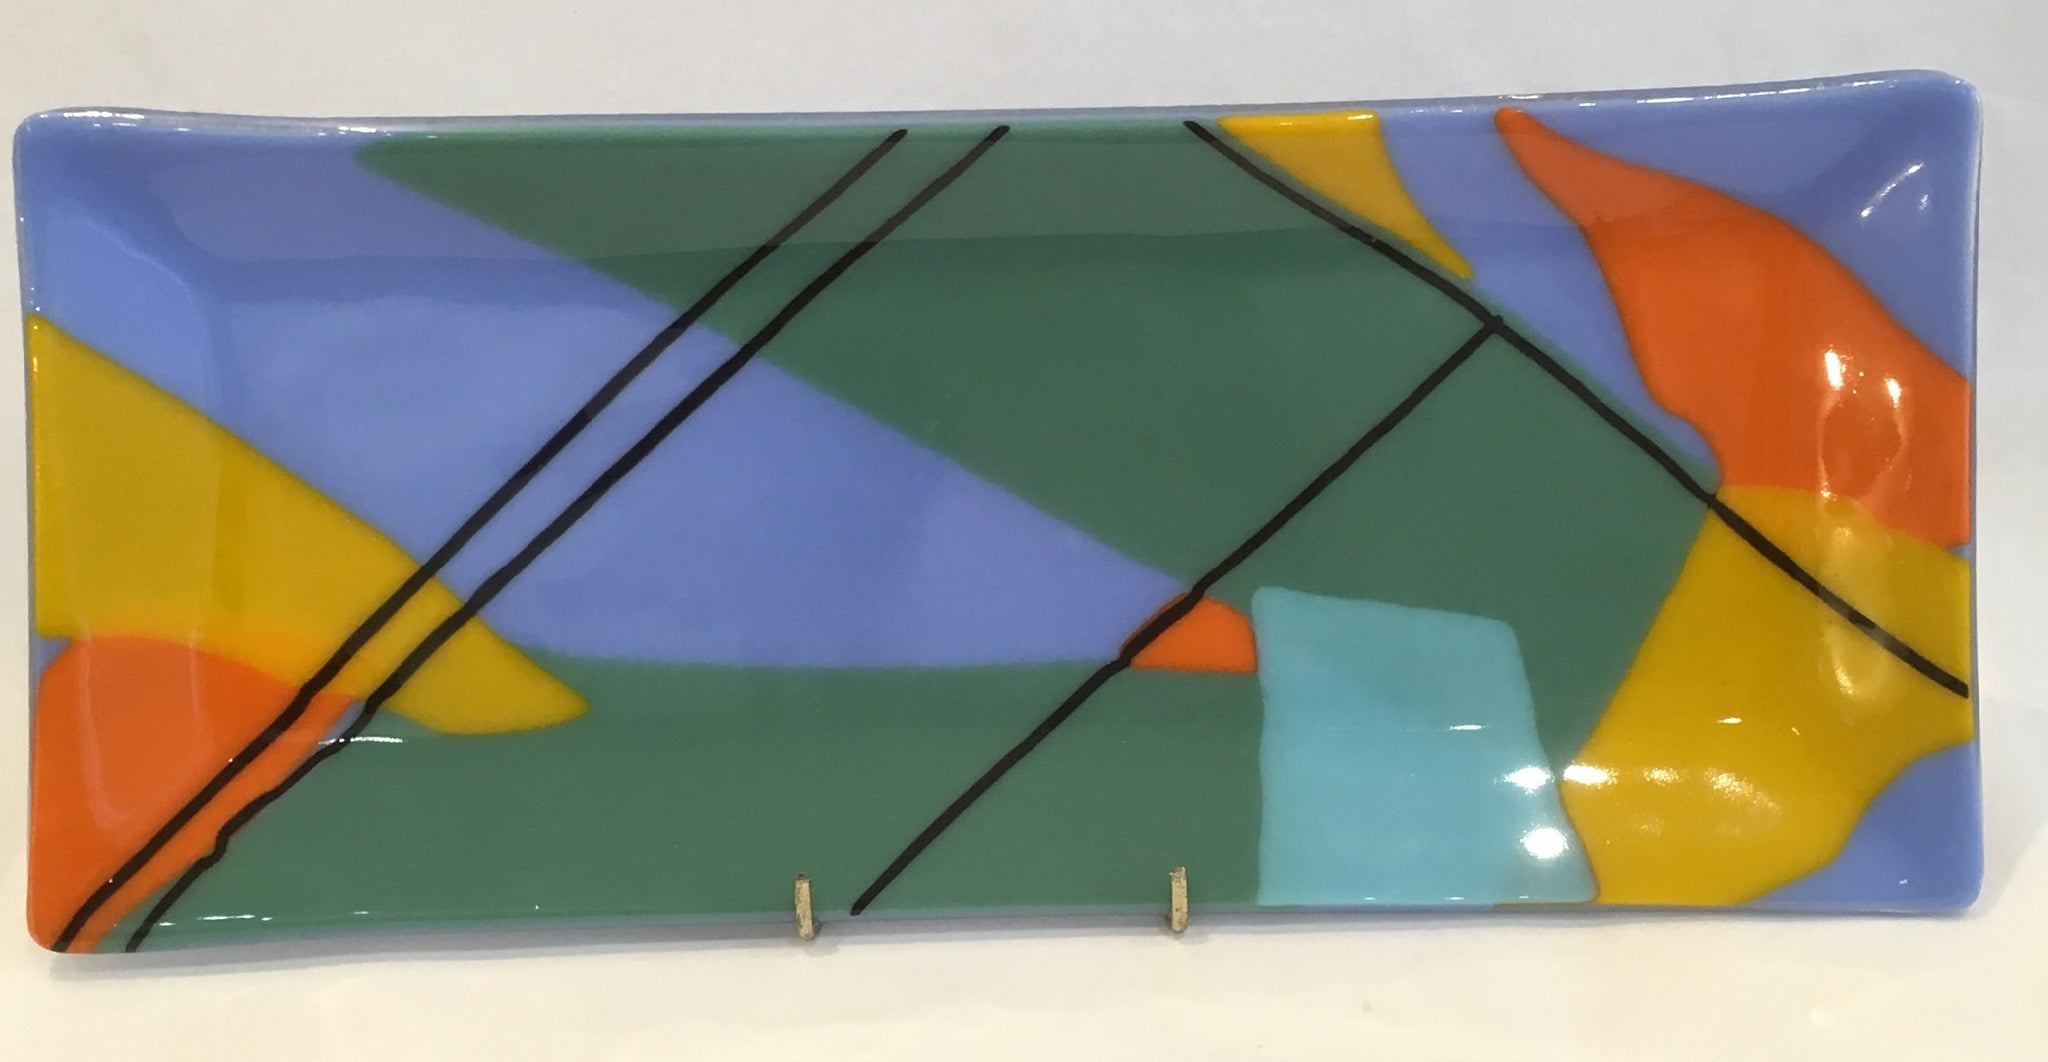 Fused glass at Craft NSW